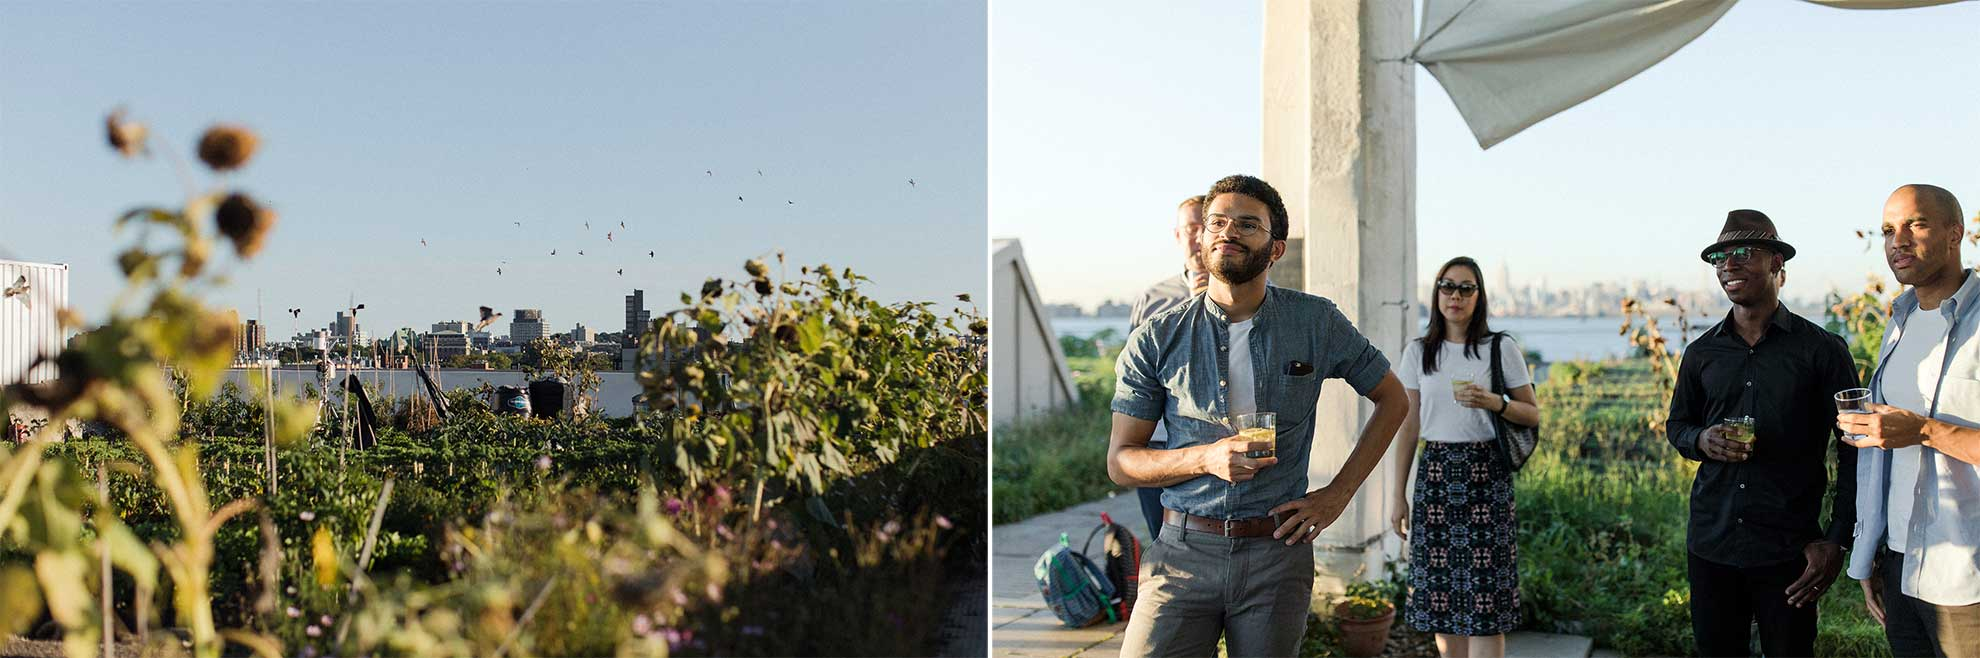 On the left, sunflowers on a rooftop garden. On the right, a group of people gathered on the rooftop with drinks in their hands.